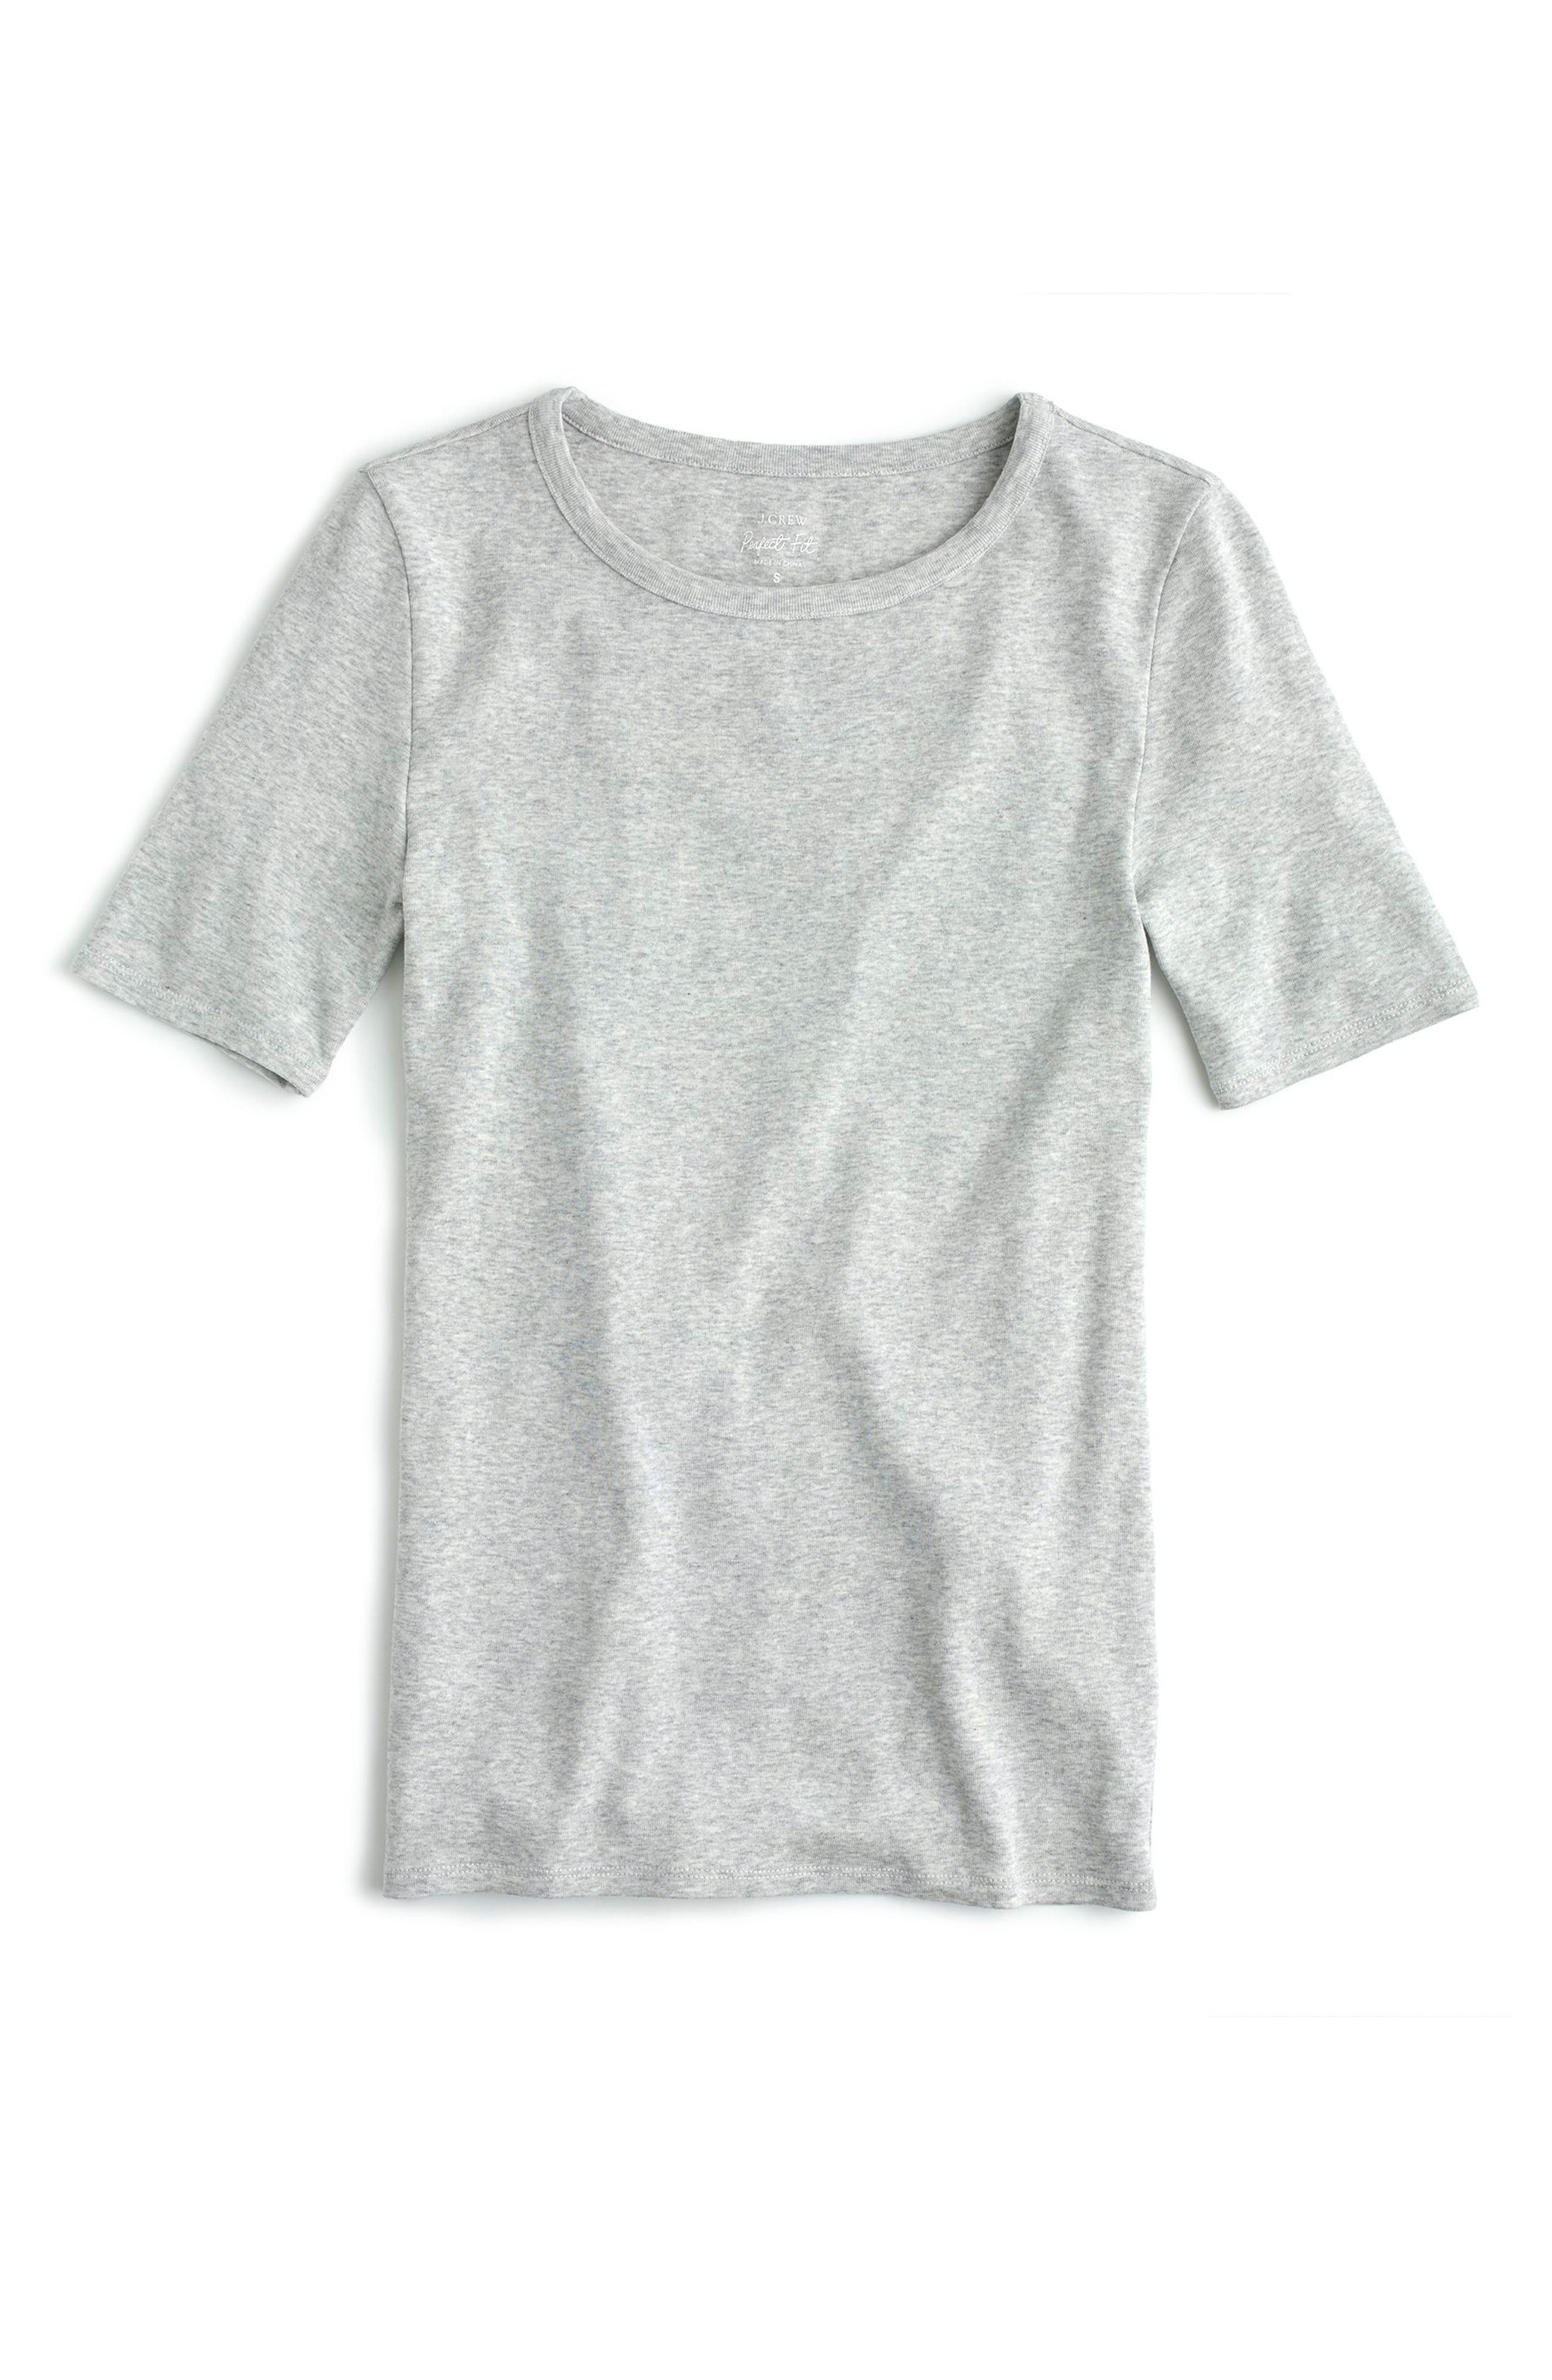 J.Crew New Perfect Fit T-Shirt,                         Main,                         color, Heather Dusk